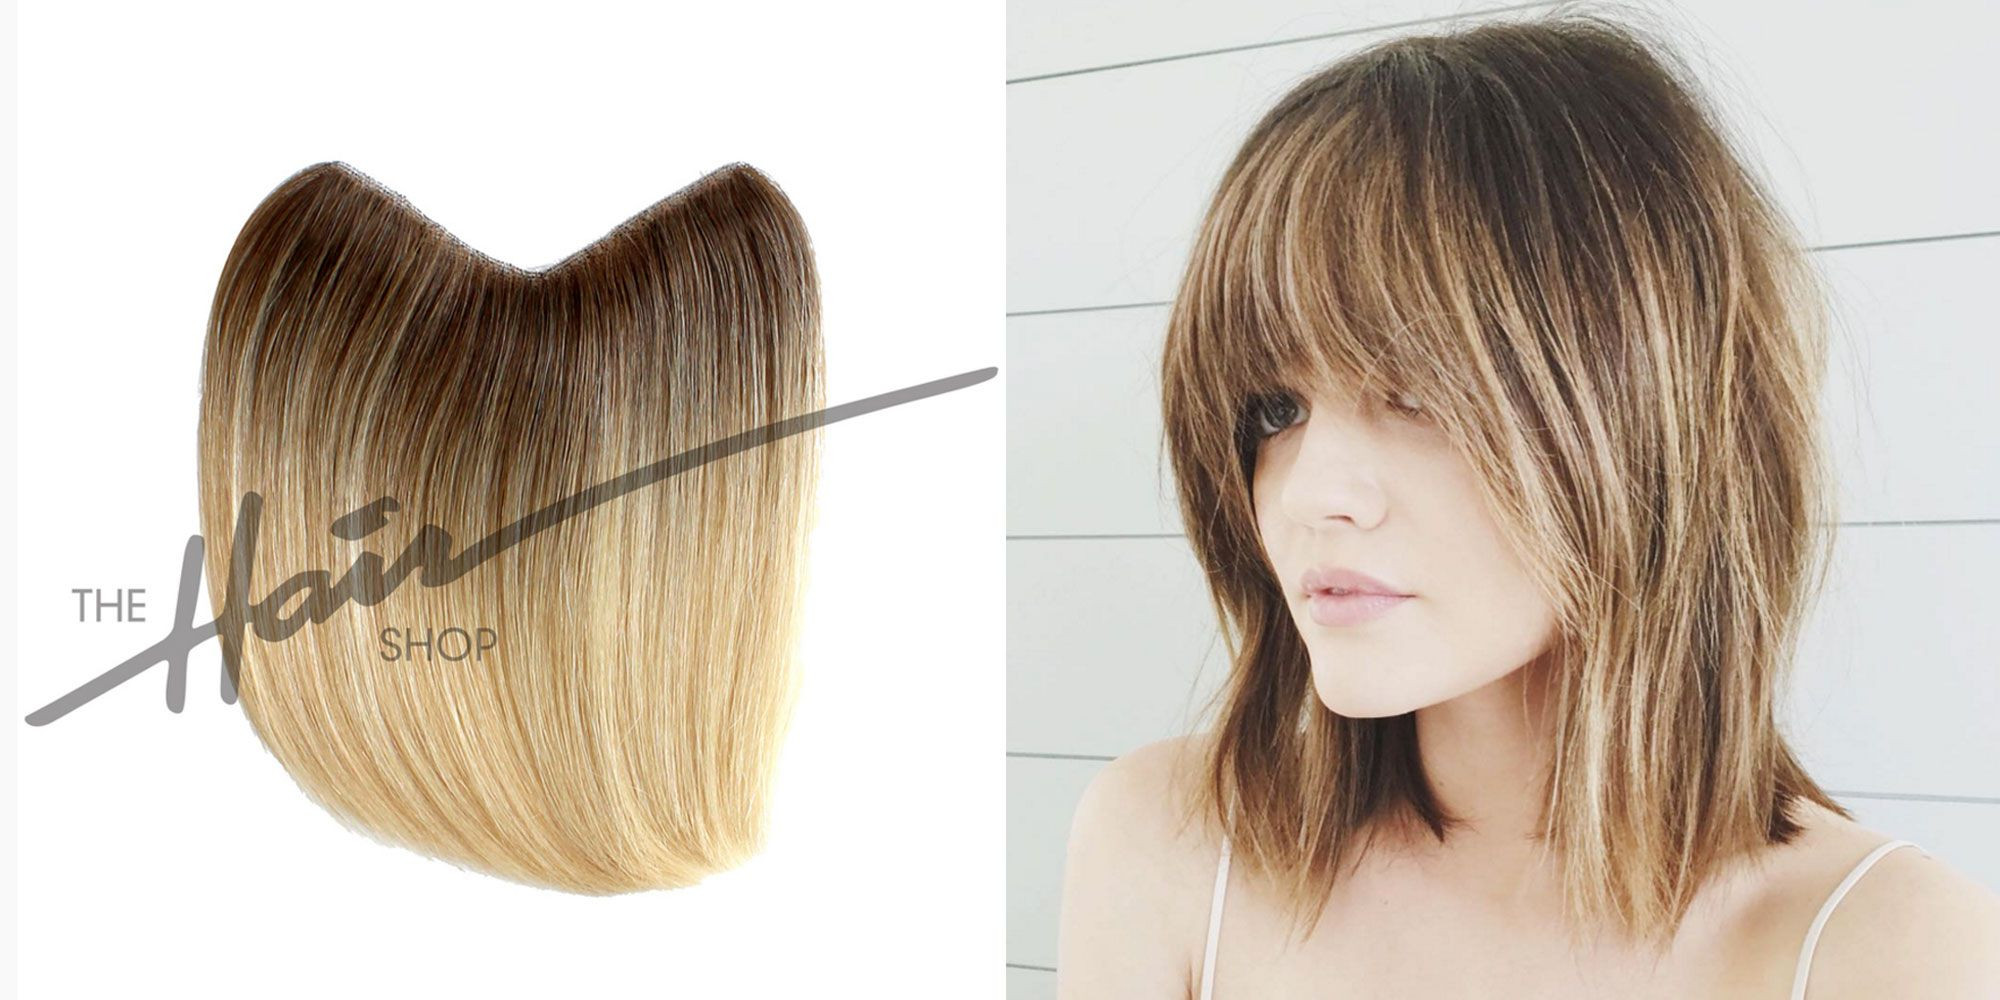 Lucy Hale - Secret to Lucy Hale Fake Bangs